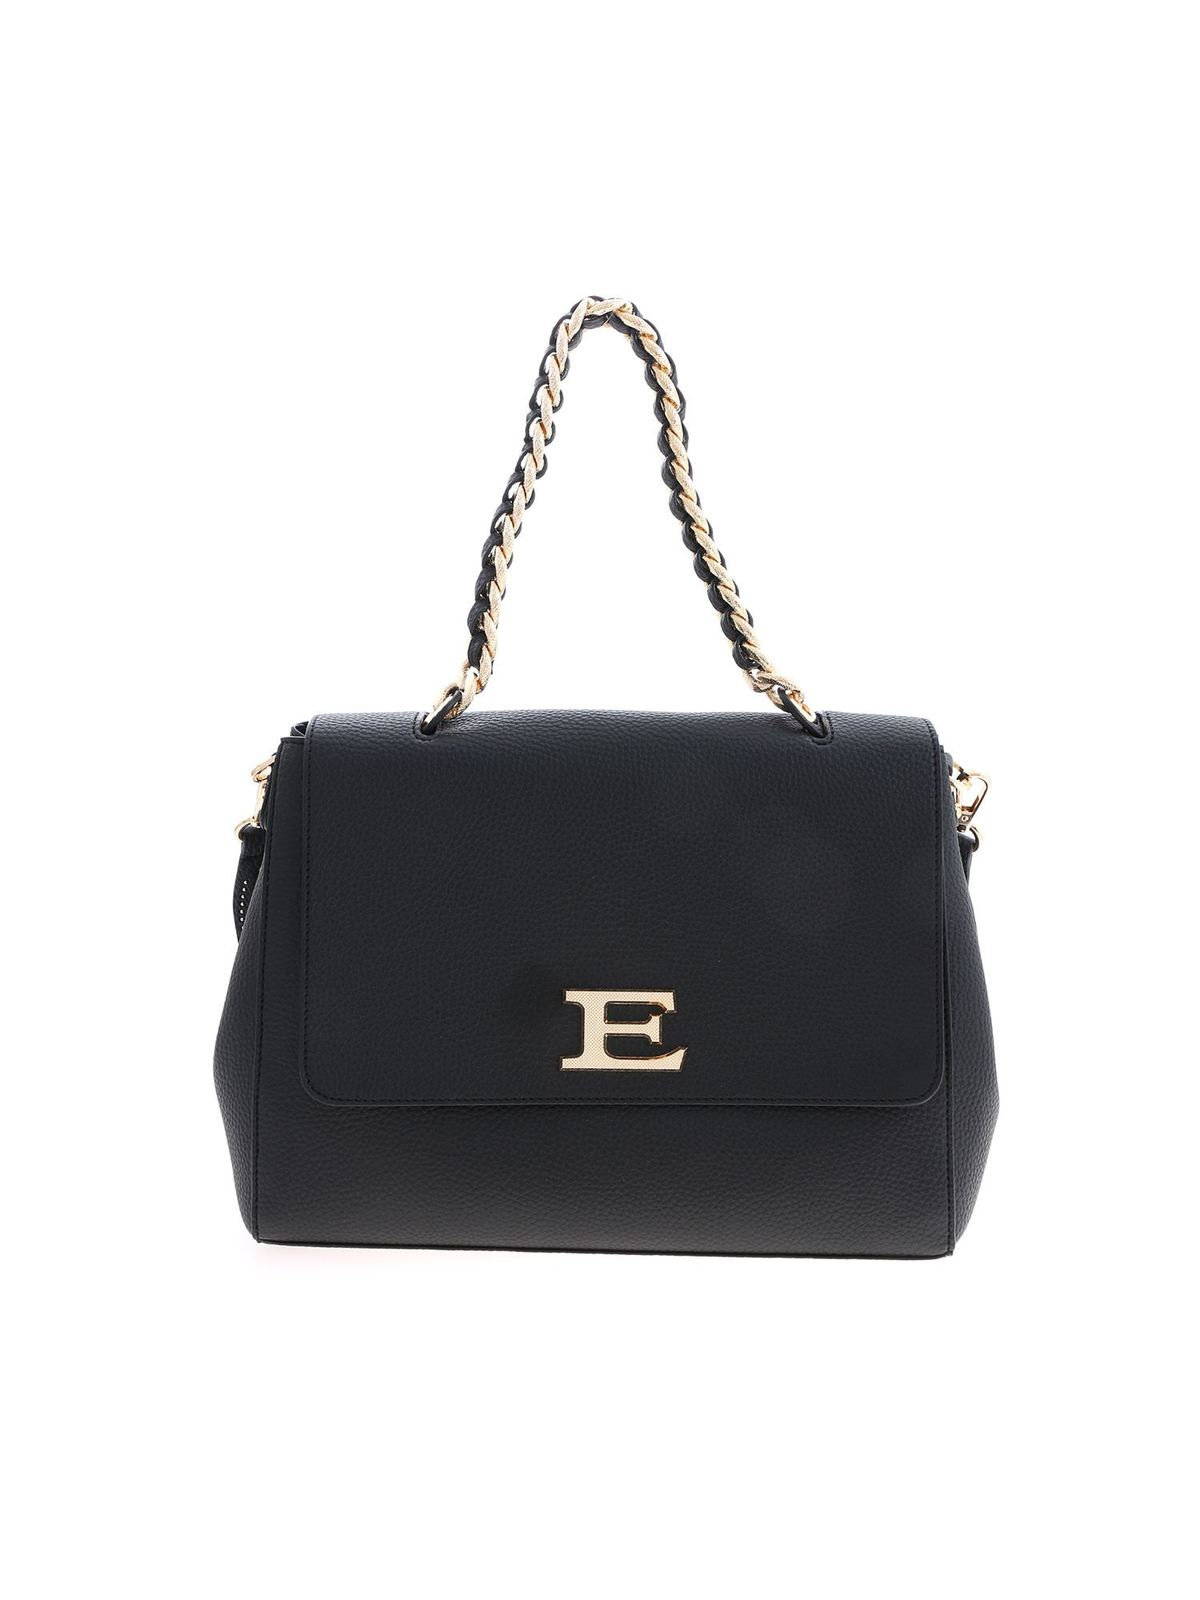 Ermanno Scervino EBA WINTER PLAIN BAG IN BLACK